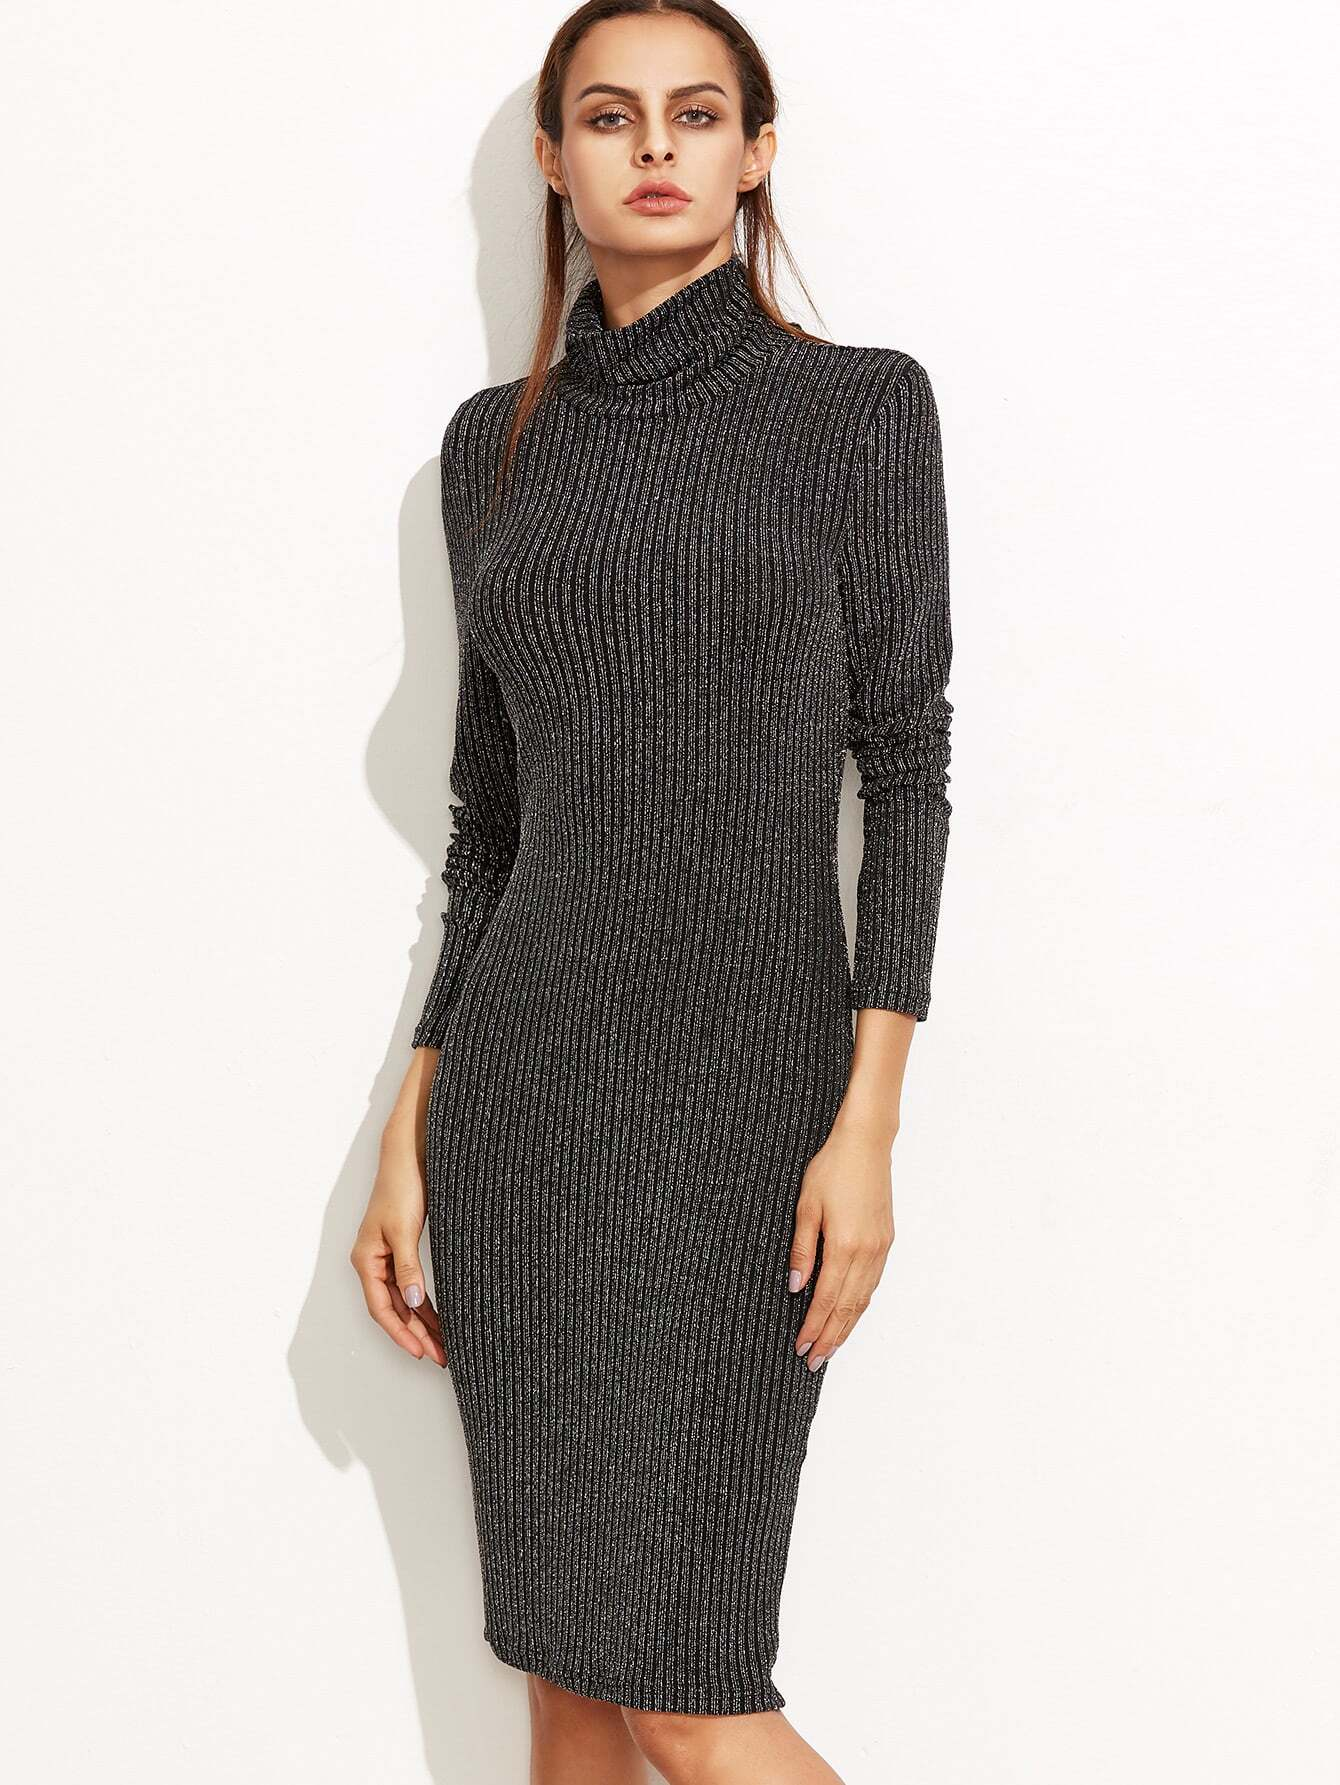 Marled Knit Cowl Neck Ribbed Pencil Dress dress161005706